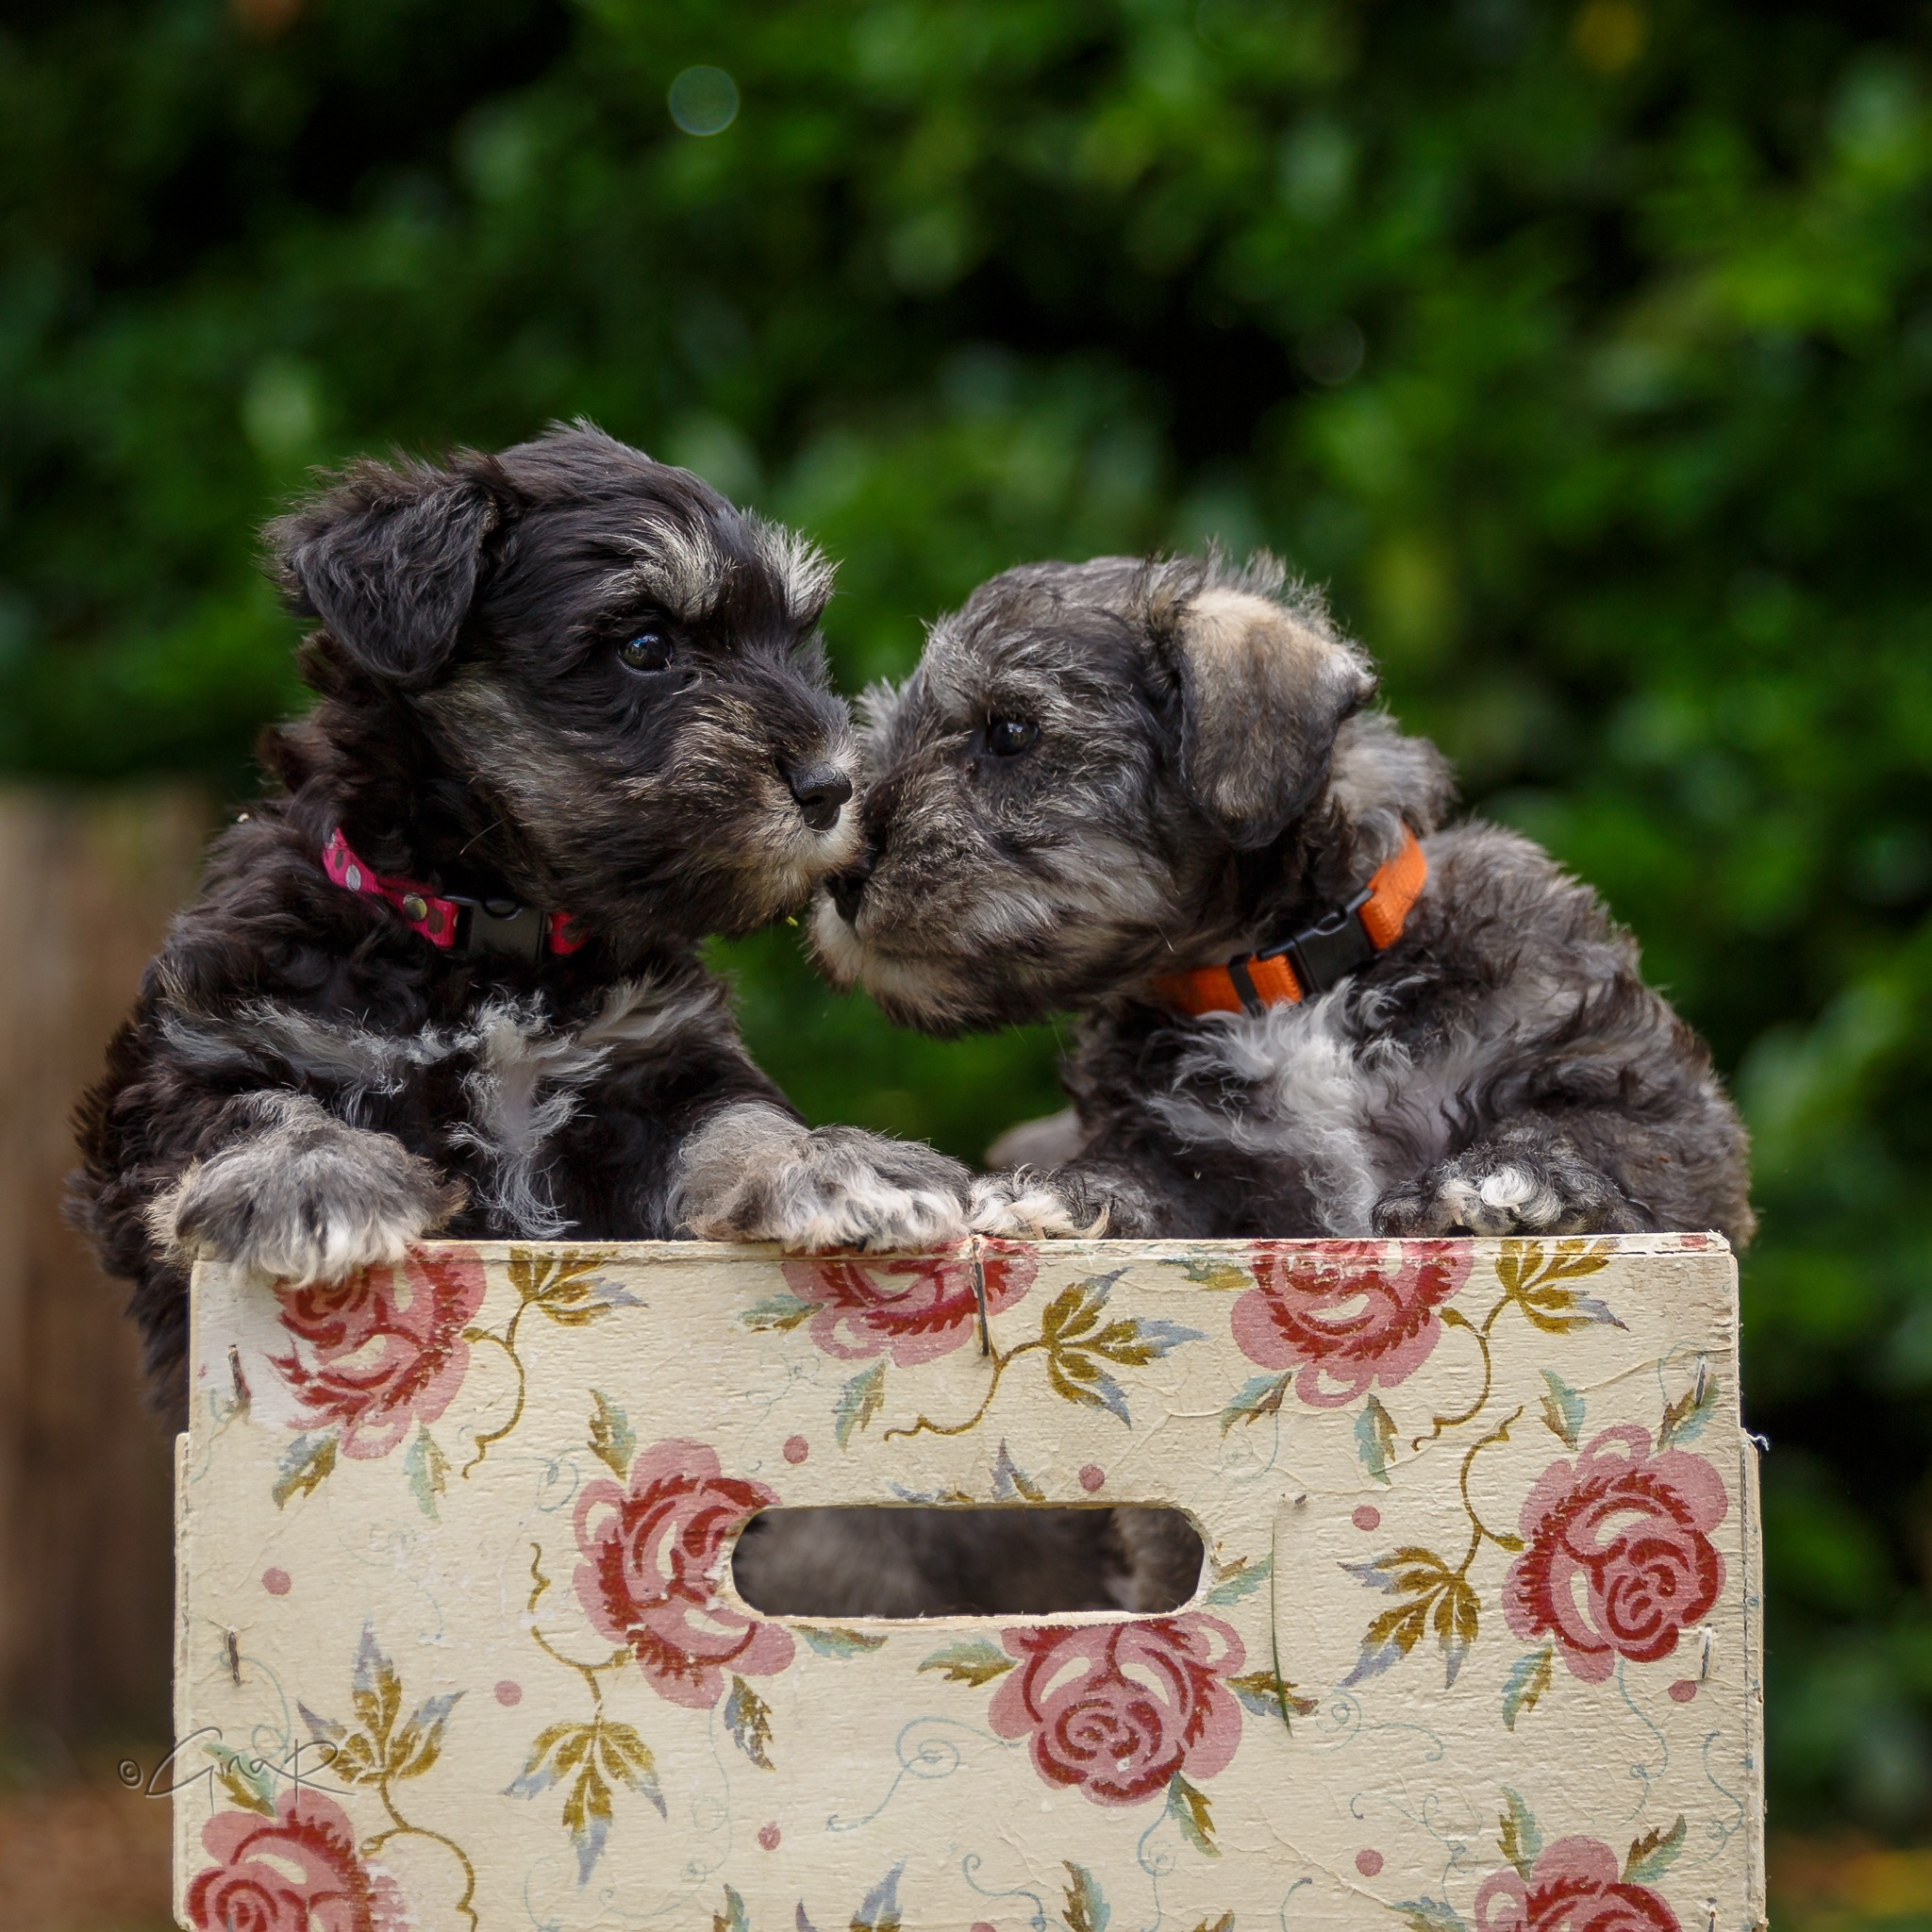 Loved my afternoon with these beauties yesterday..6 weeks old bundles of fun #puppylove #ginar#minat by Gina Rayment